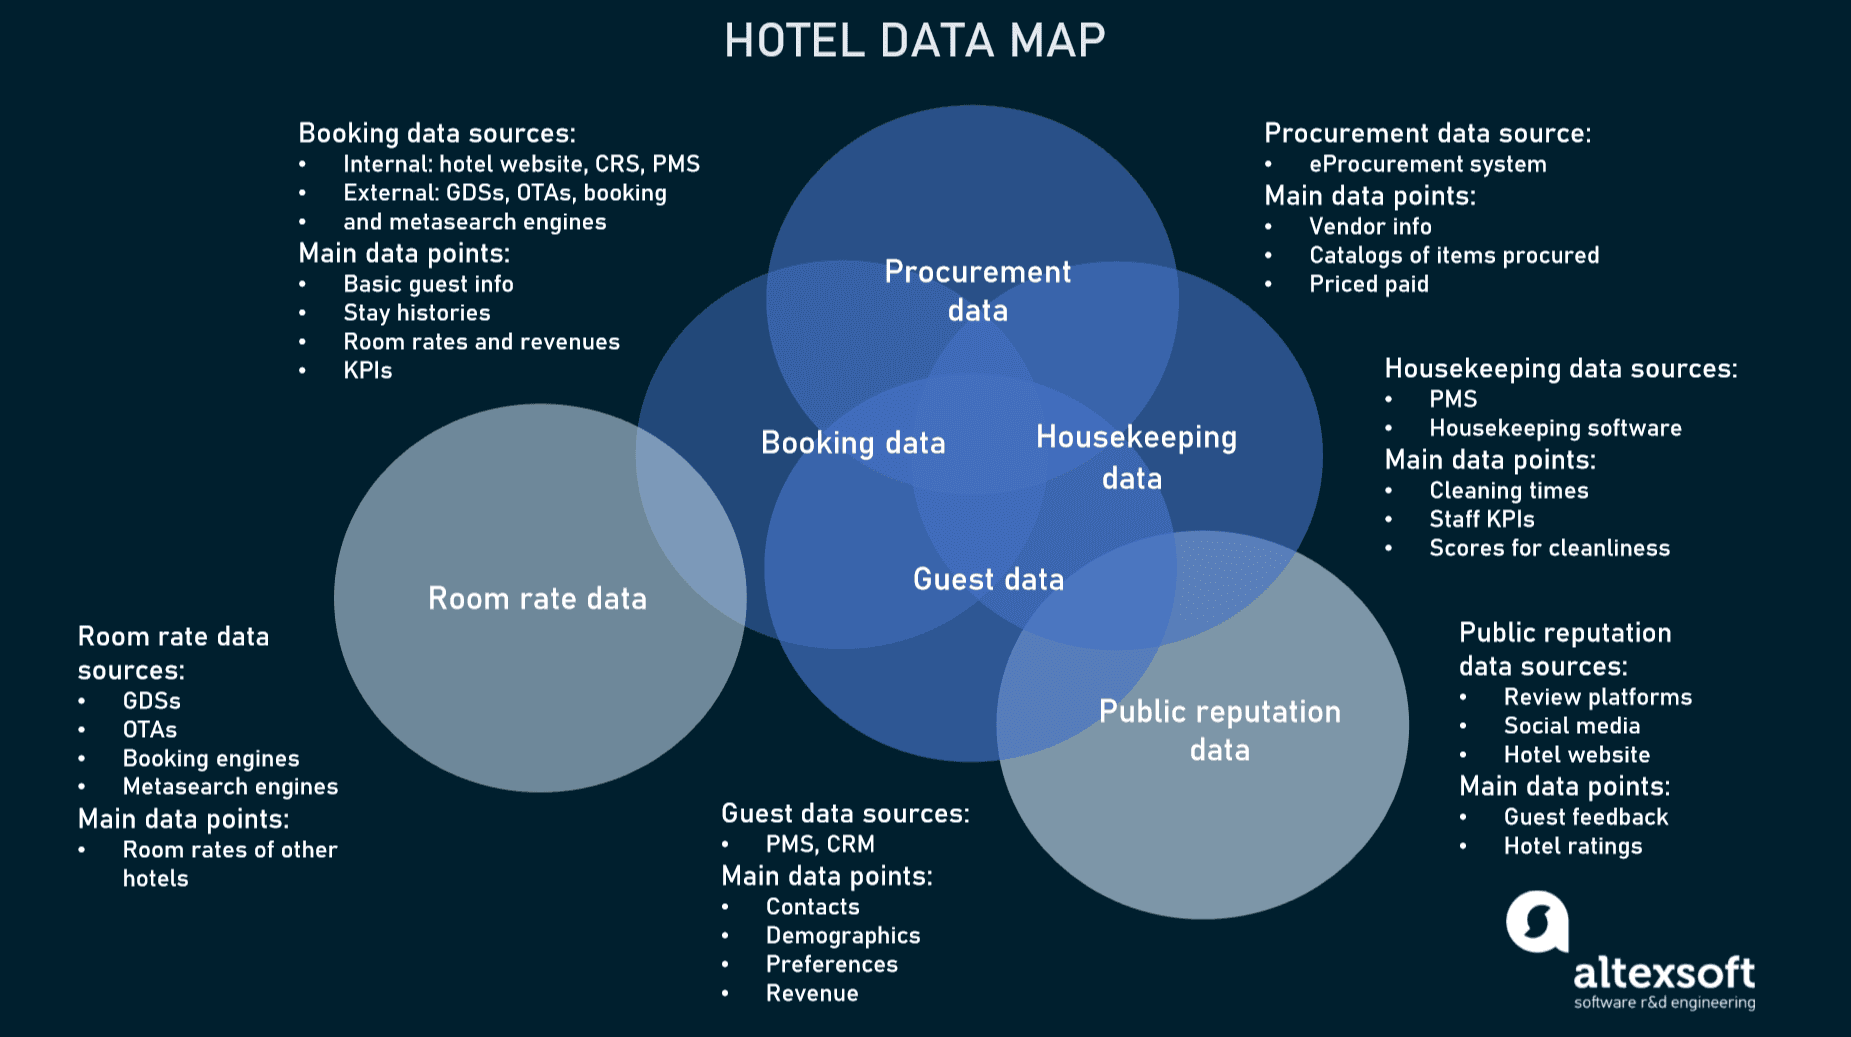 Important hotel data sets and overlaps between them